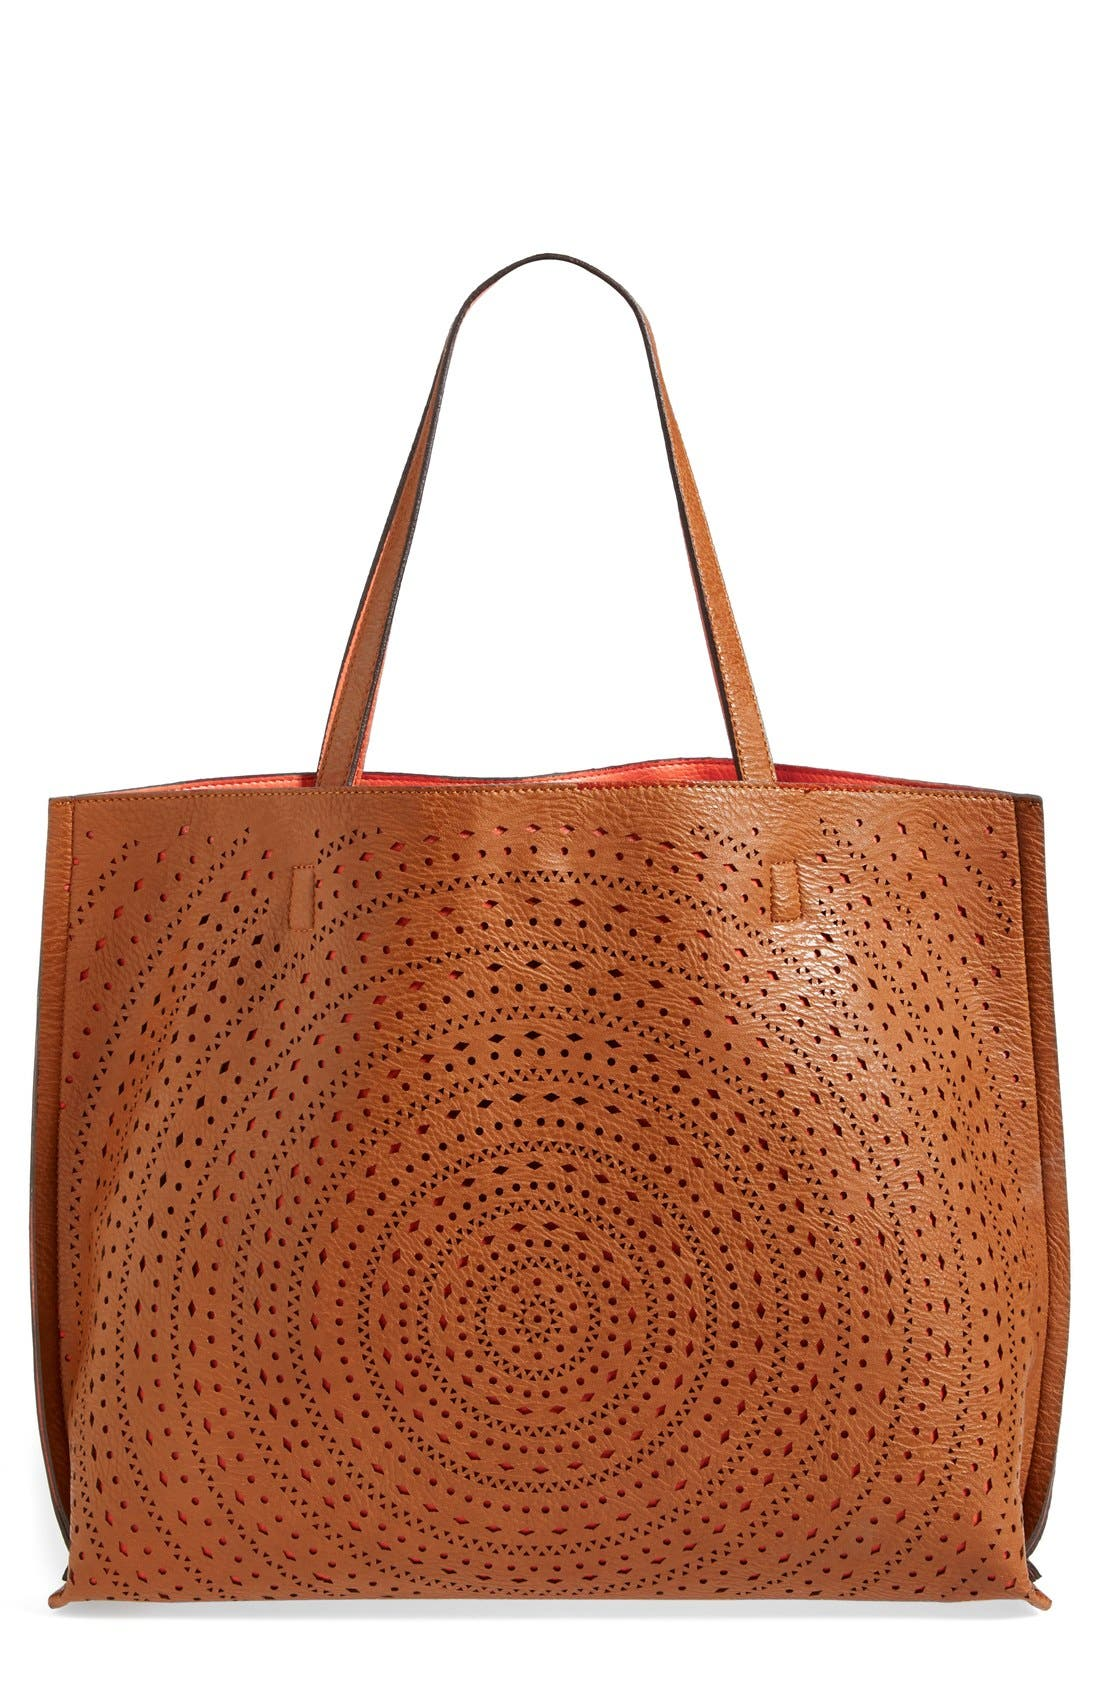 Main Image - Street Level Laser Cut Reversible Faux Leather Tote